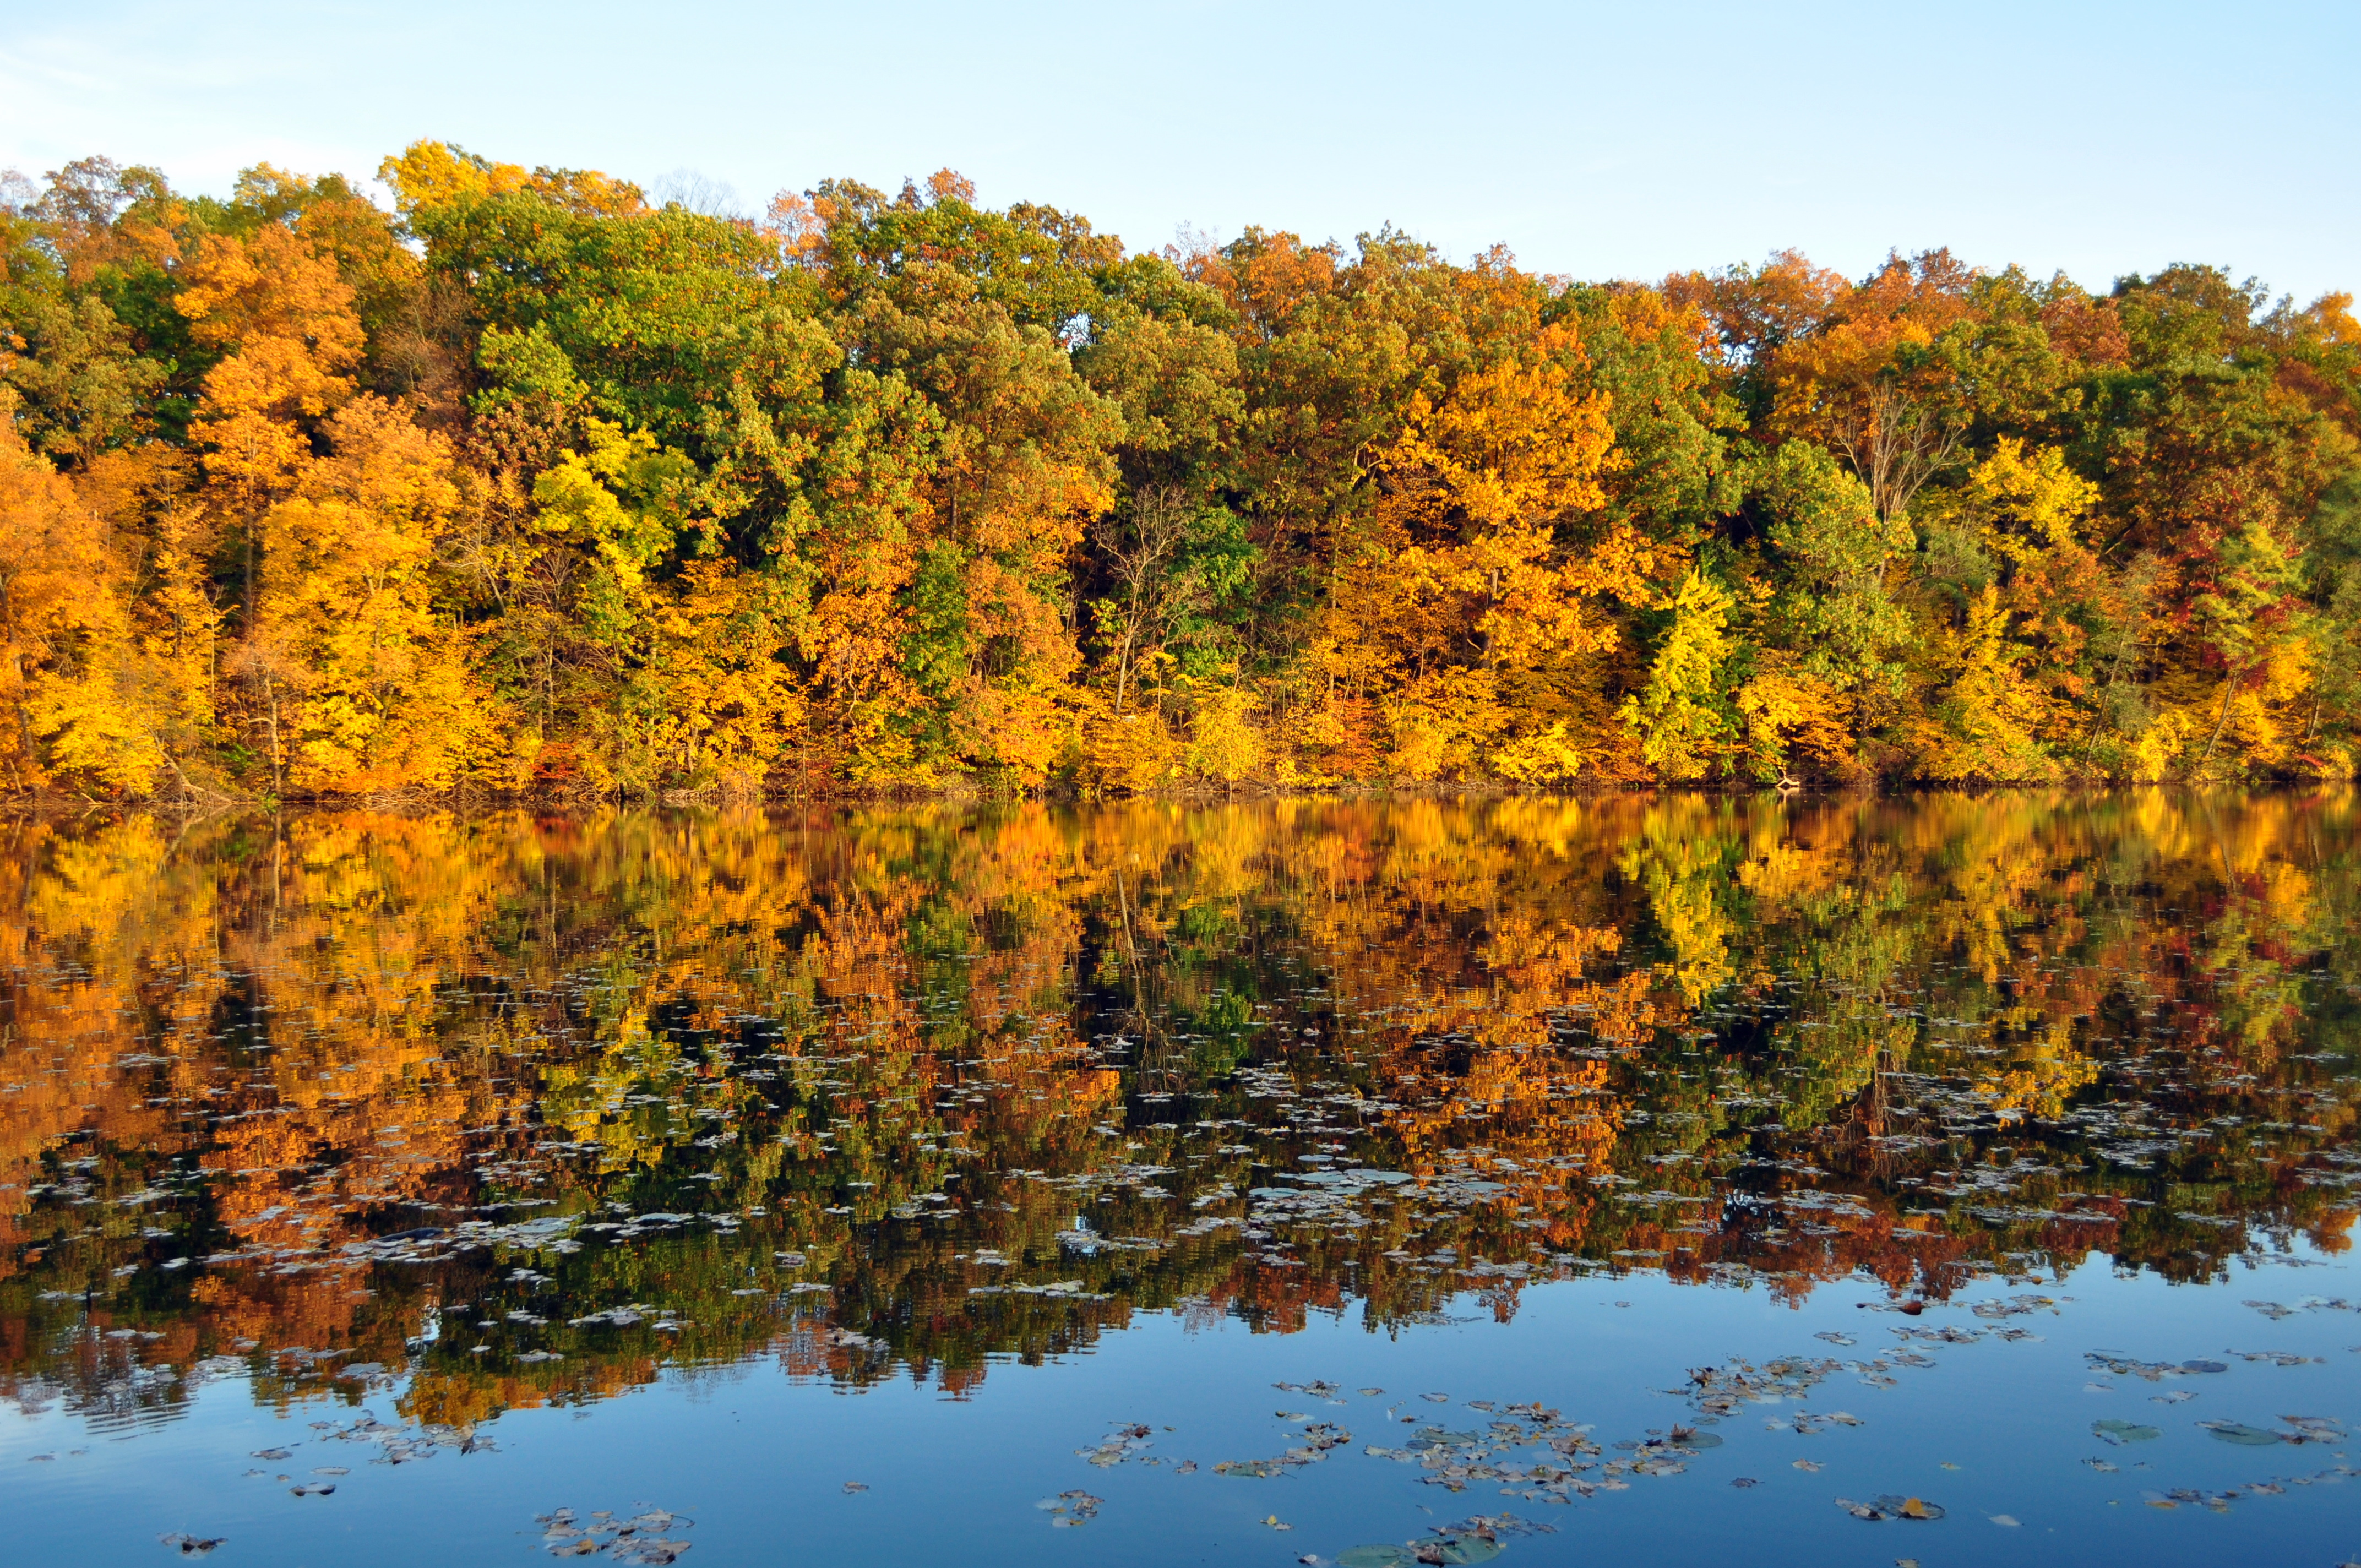 Fall Leaves on the River in Ann Arbor